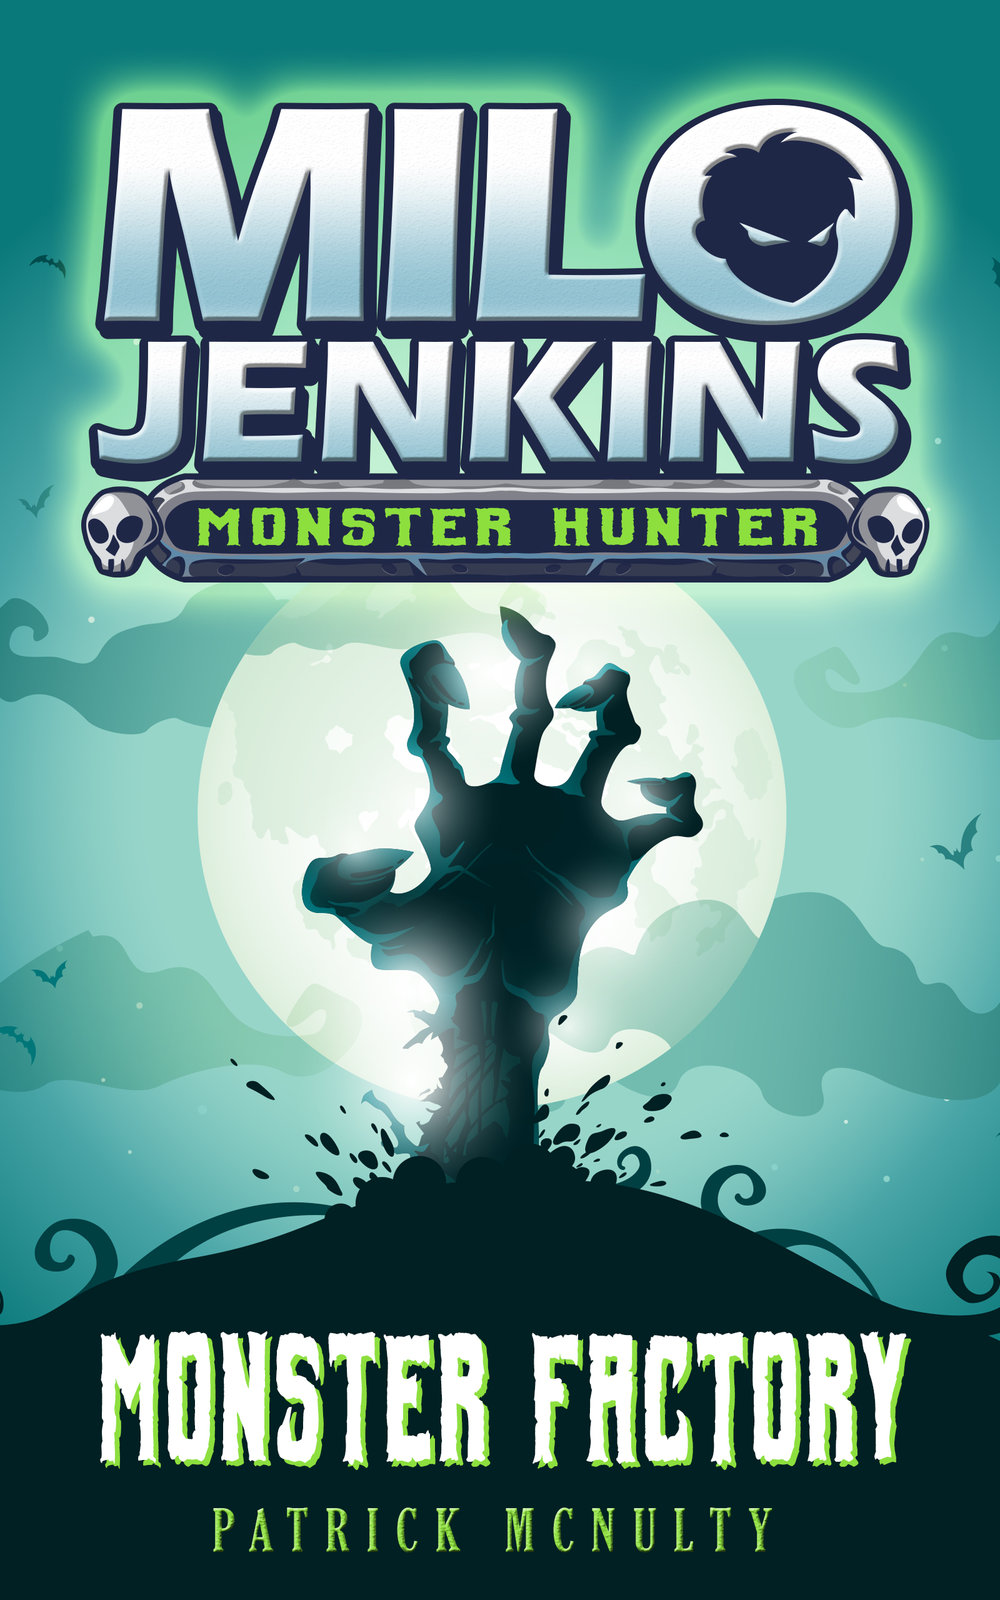 Milo Jenkins Monster Factory 1600 x 2560 v1.jpg